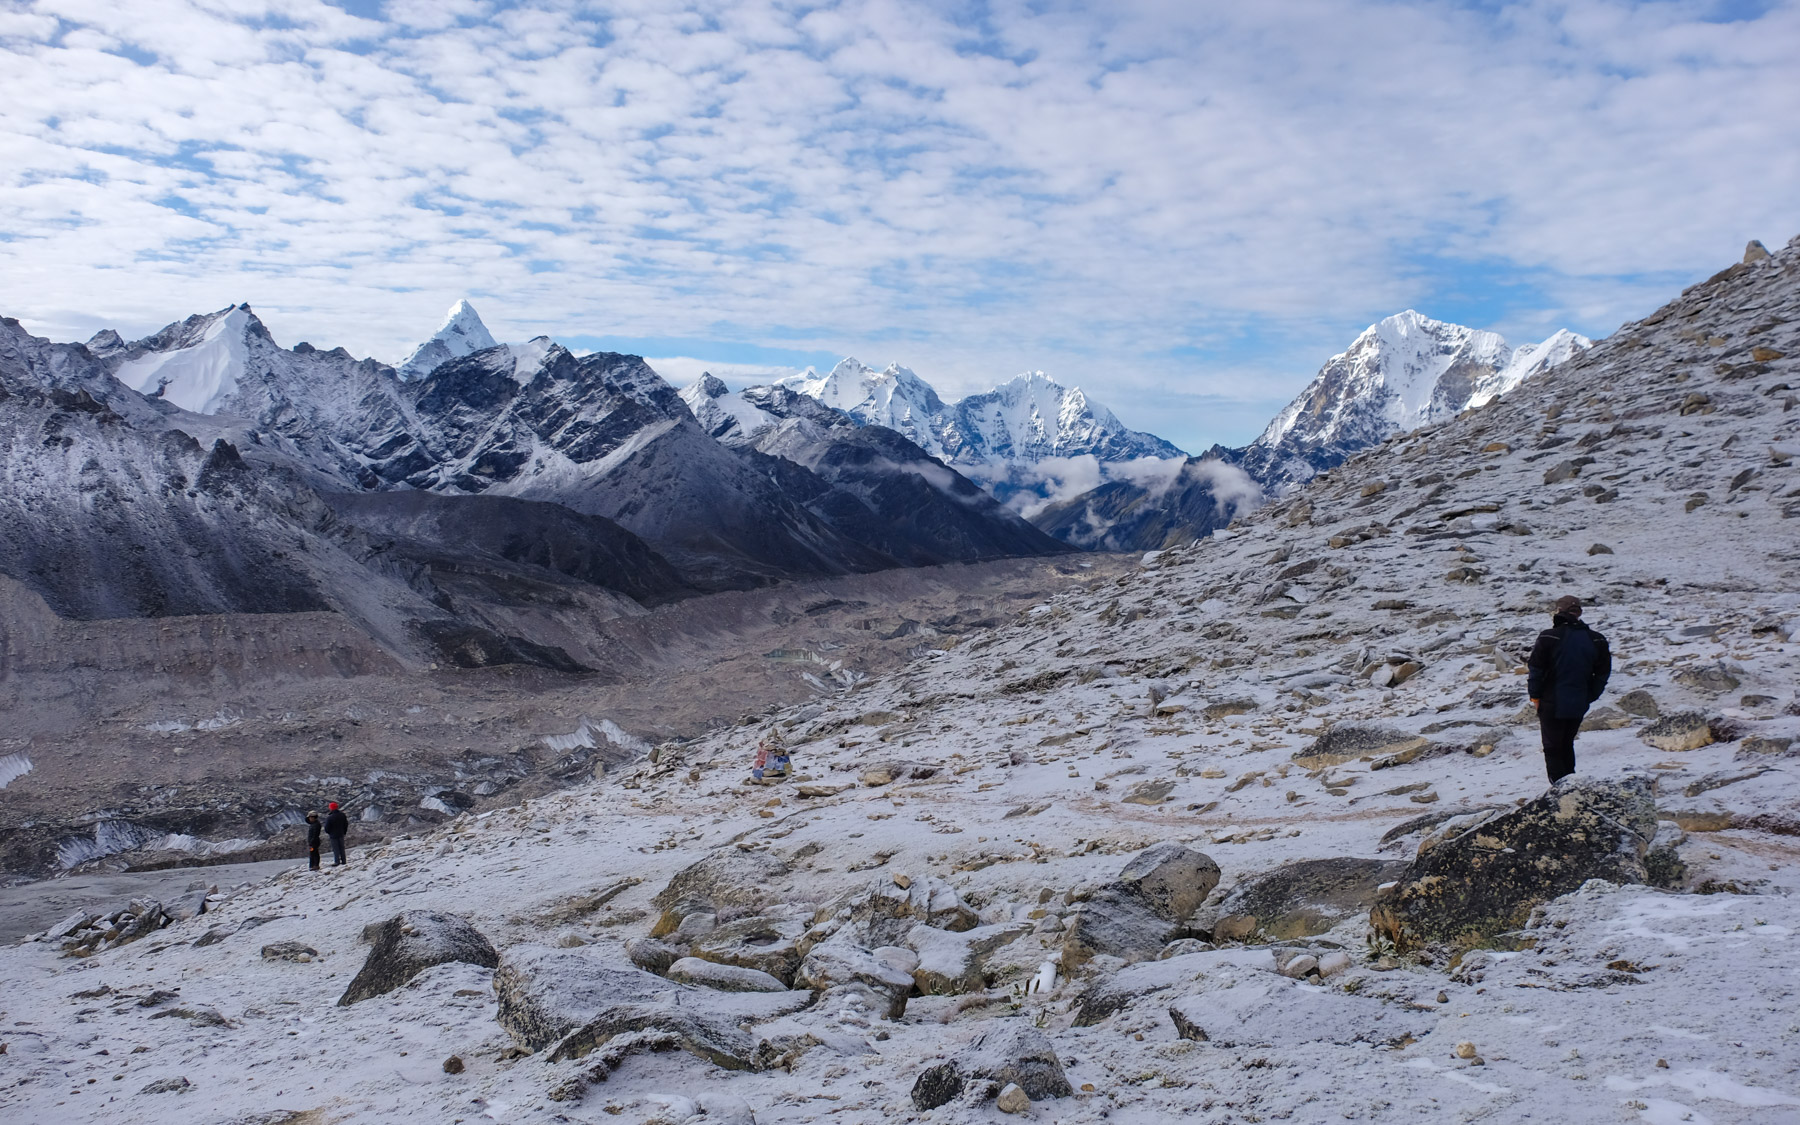 Kala Patthar & Gokyo, Everest 3 pass #3 15